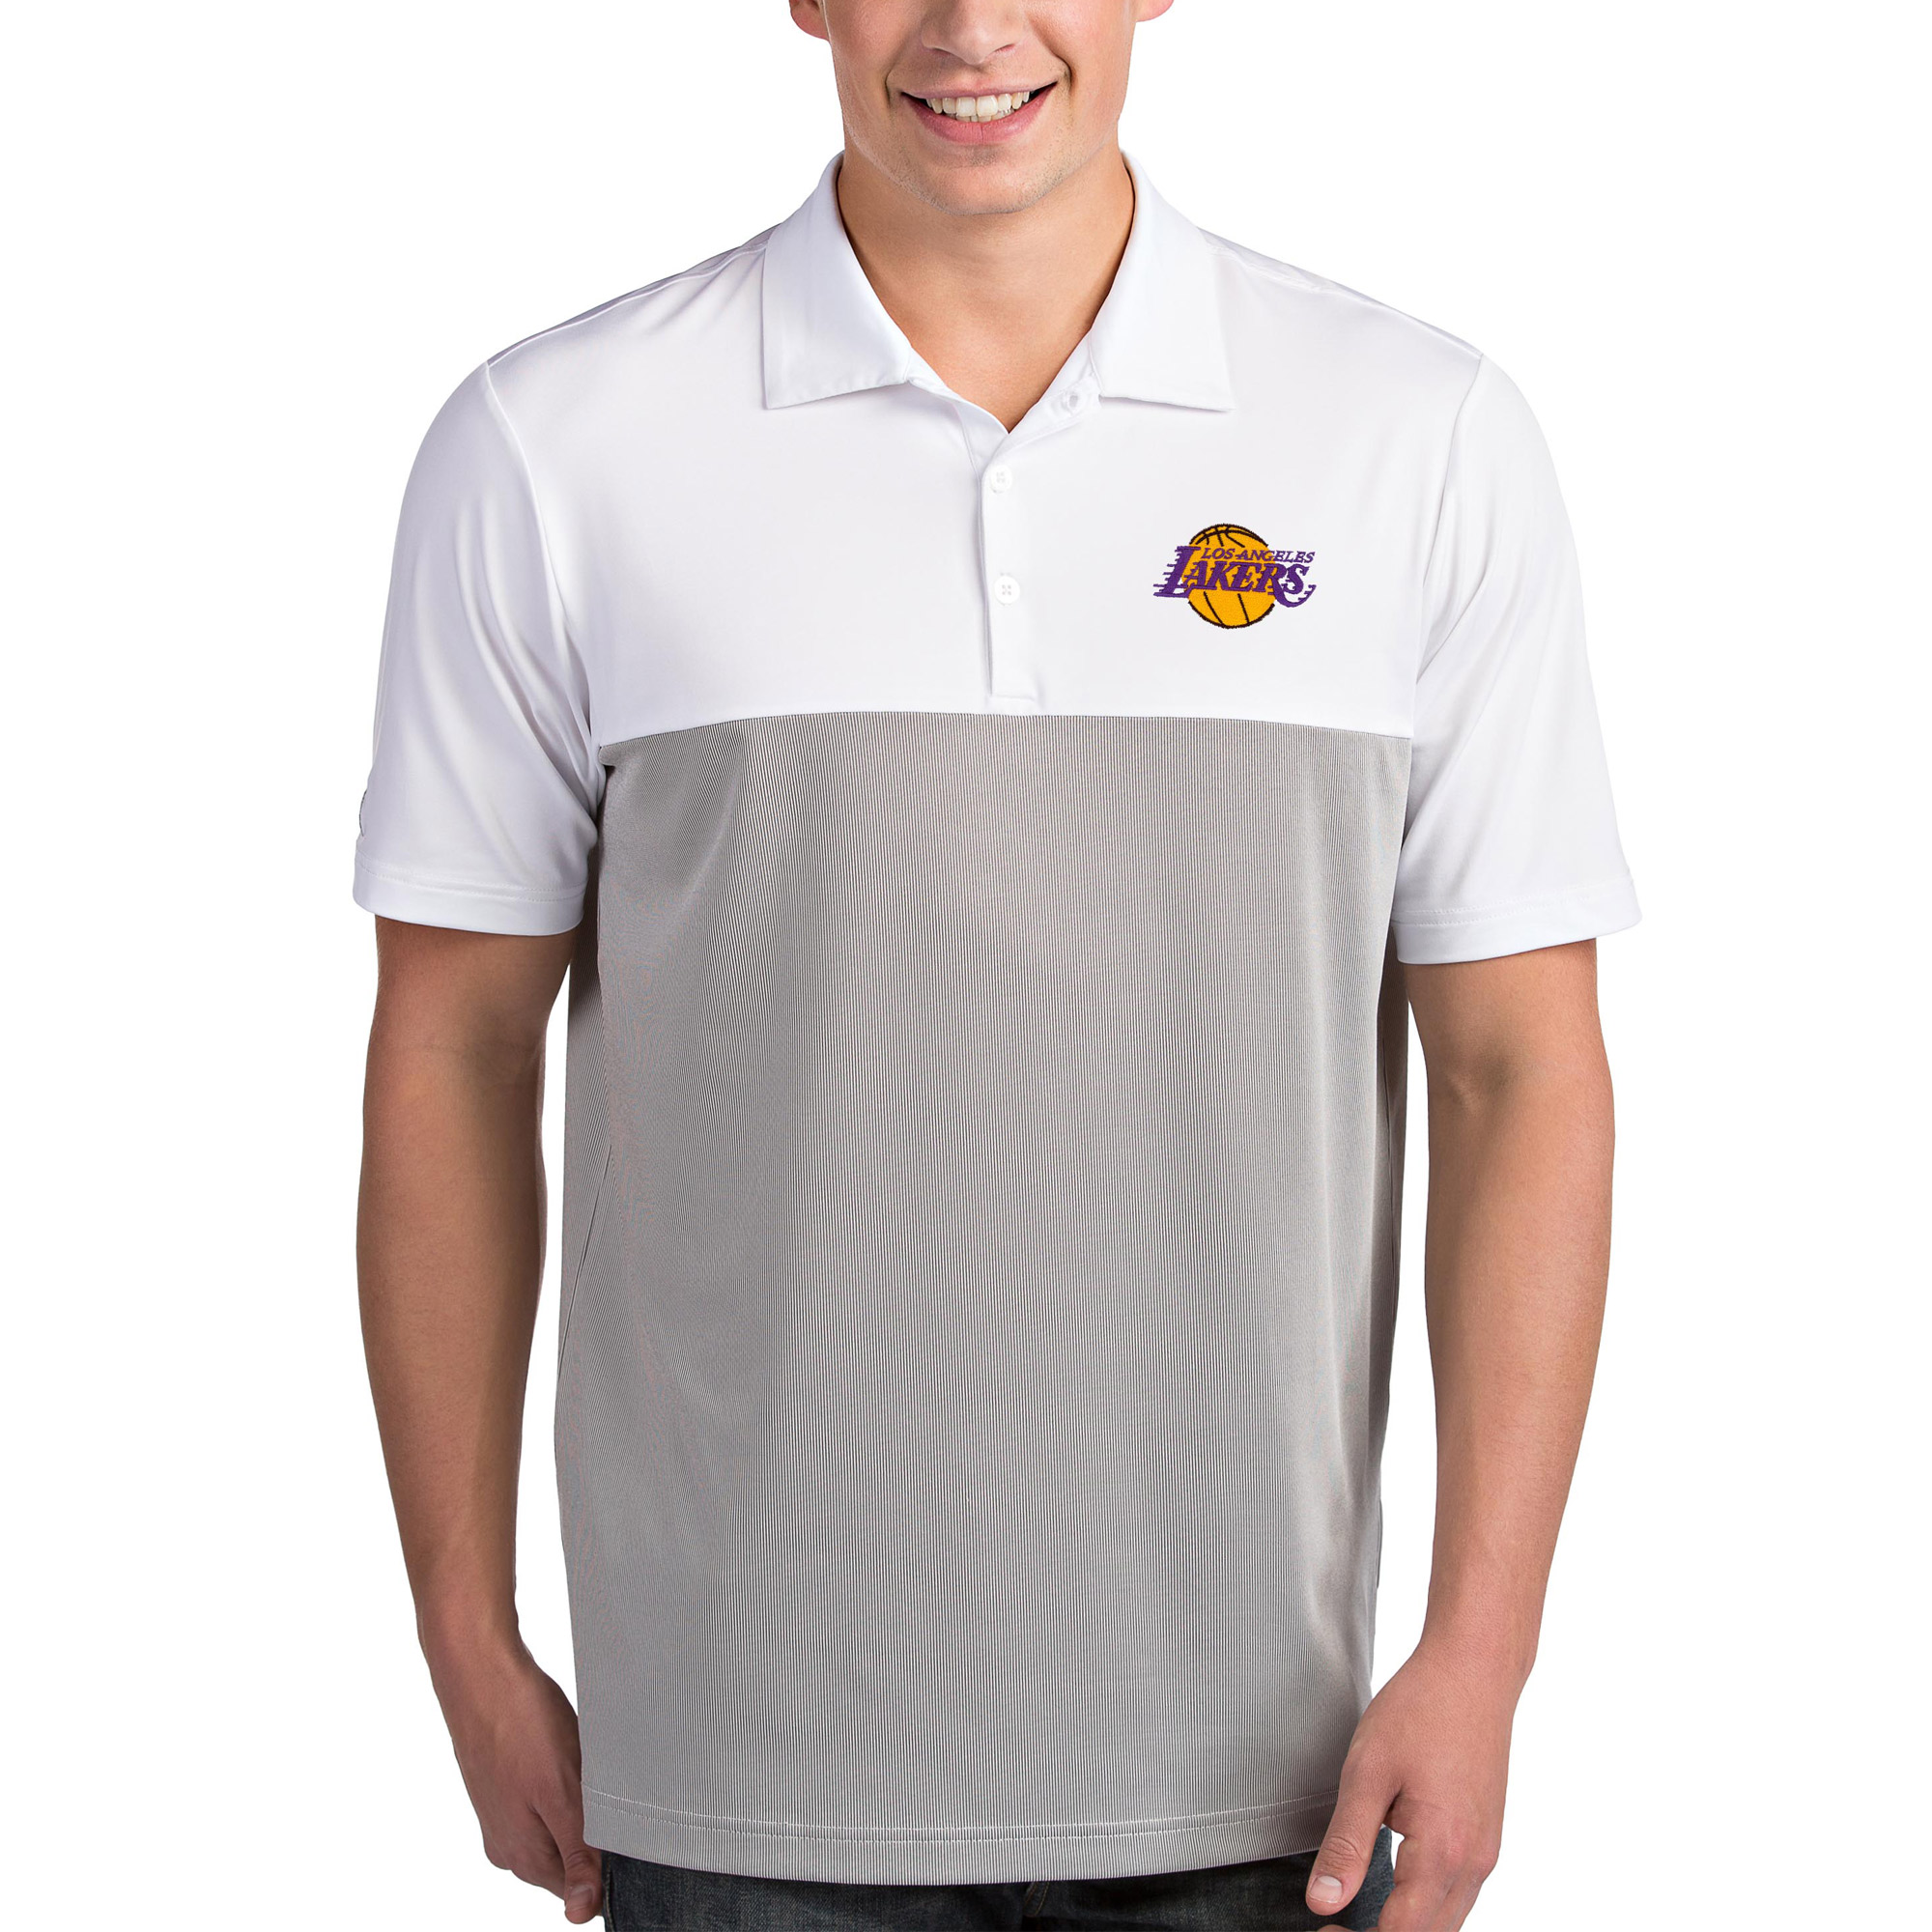 Los Angeles Lakers Antigua Venture Polo - White/Gray